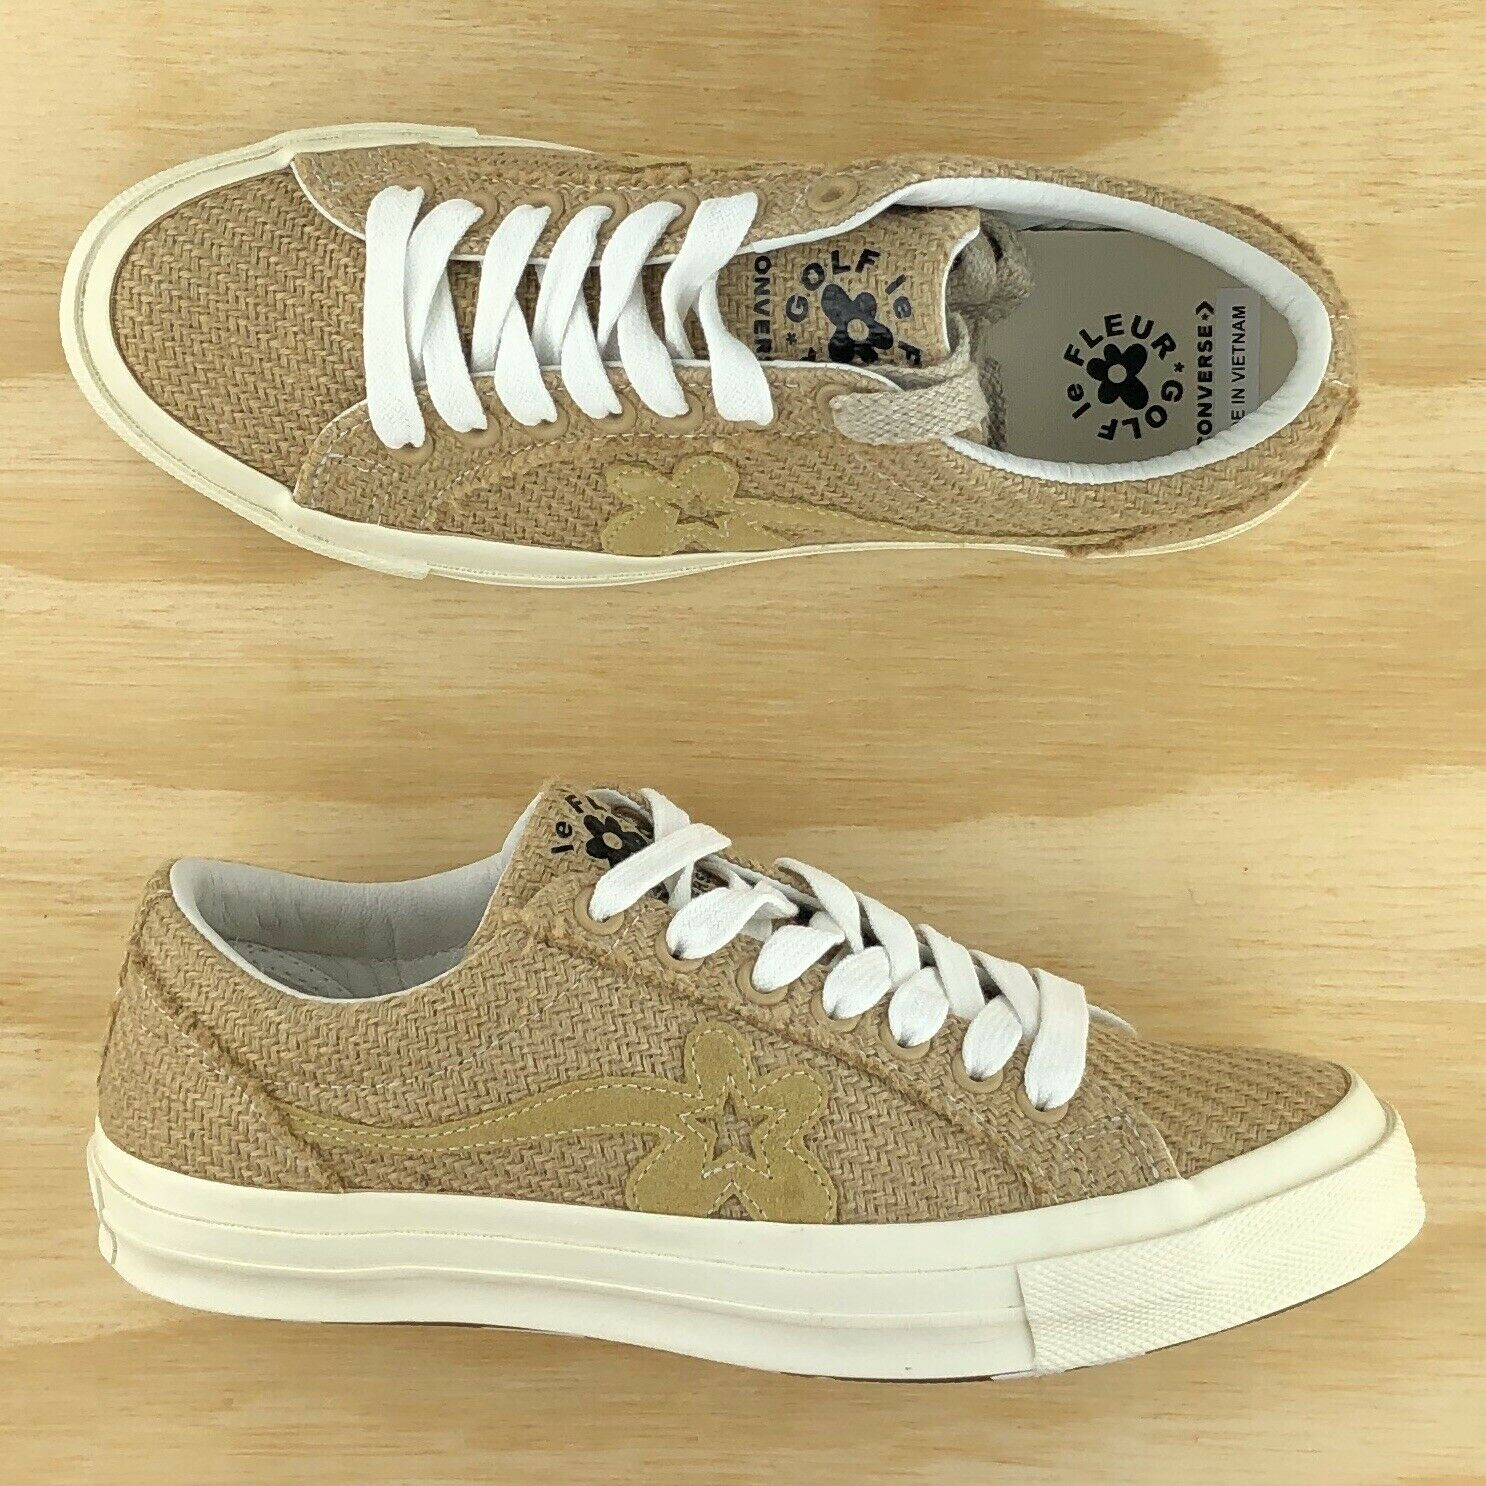 Converse One Star Ox Golf Le Fleur Burlap